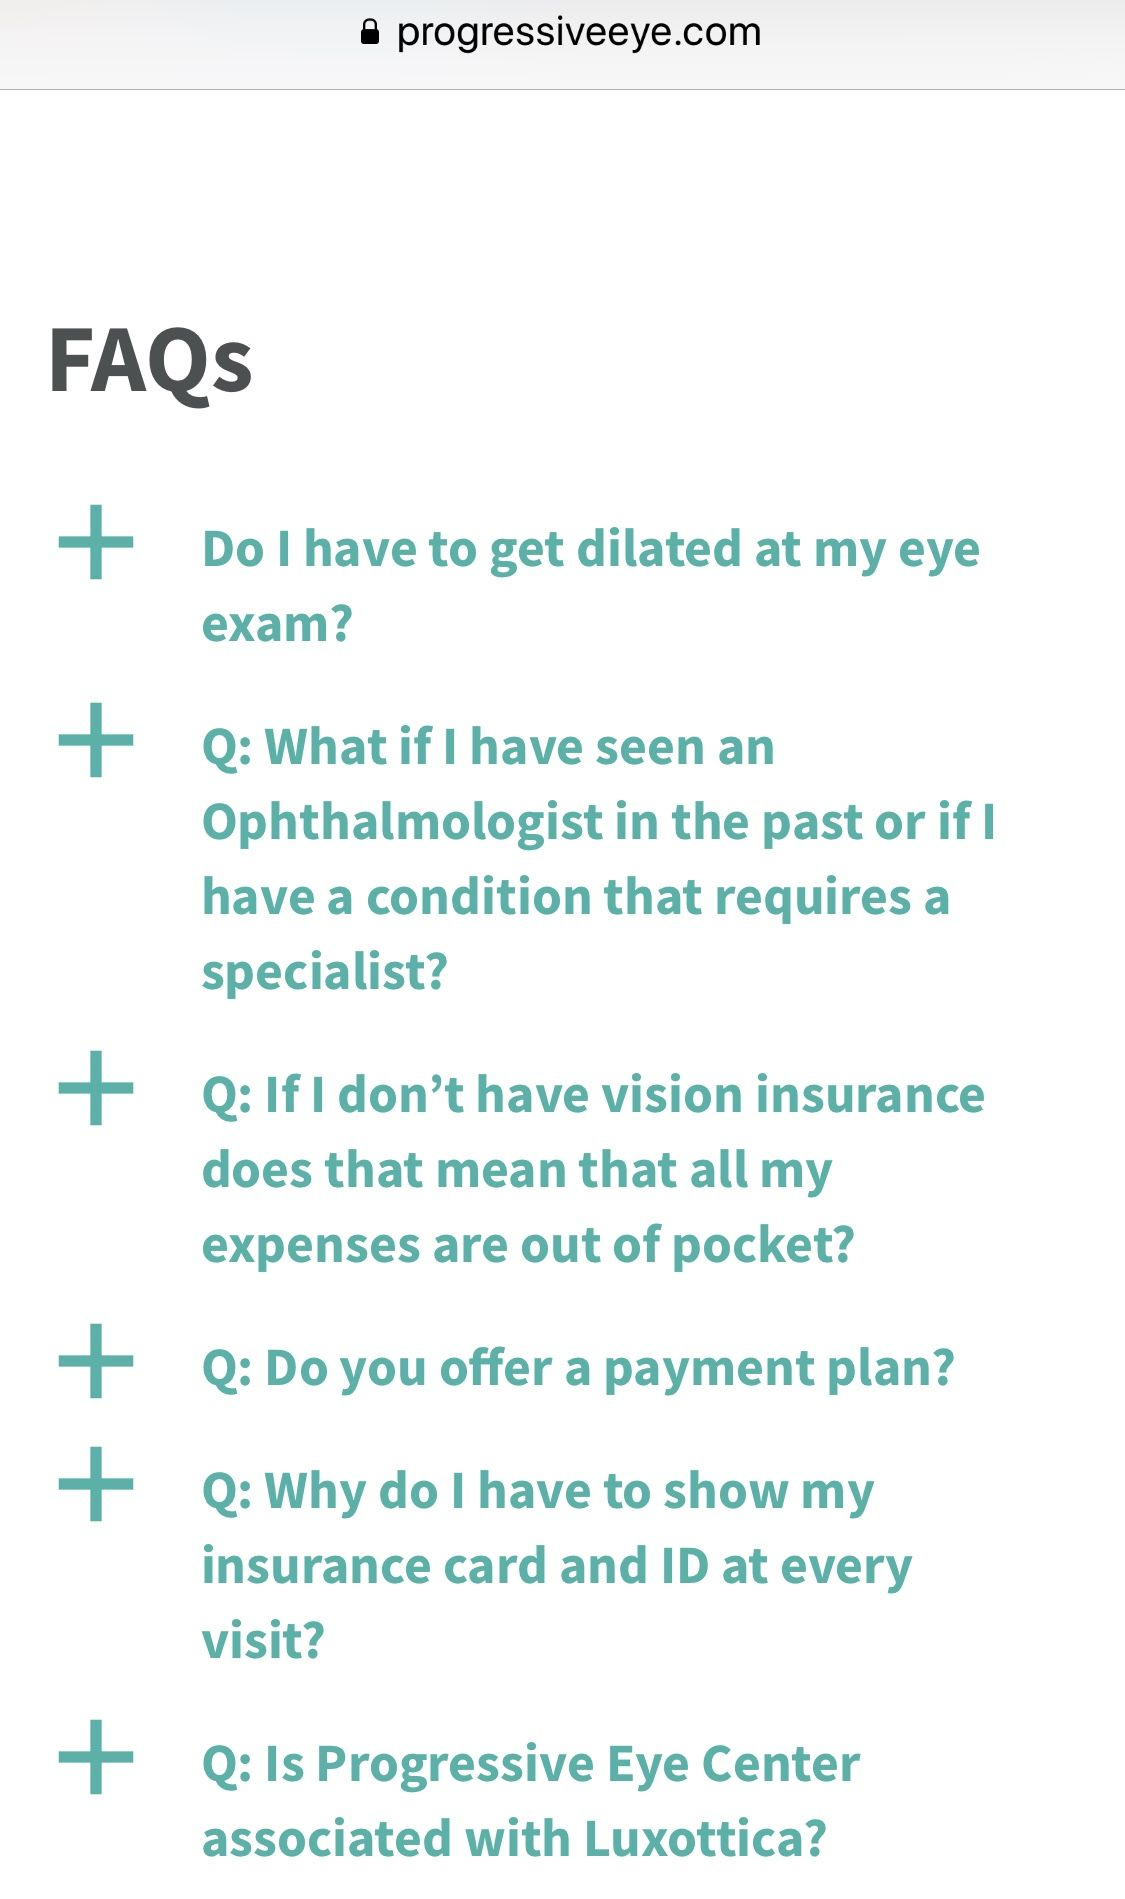 View Our List Of Faqs Progressiveeye Progressiveeyecenter